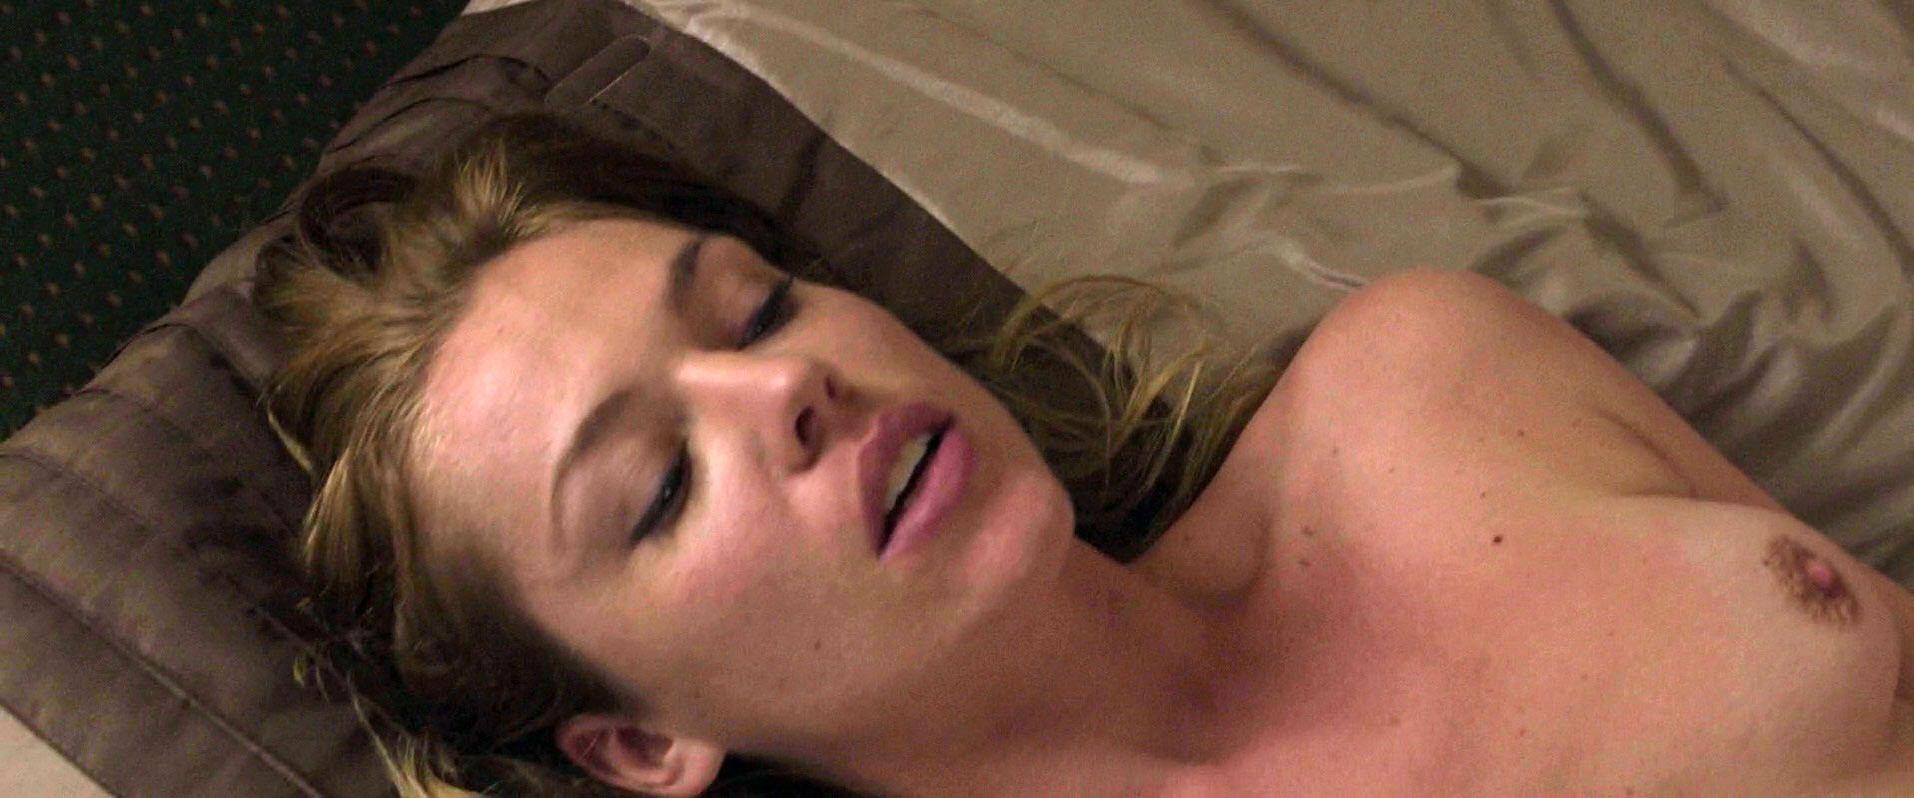 Agnes Bruckner nude - There Is a New World Somewhere (2015)